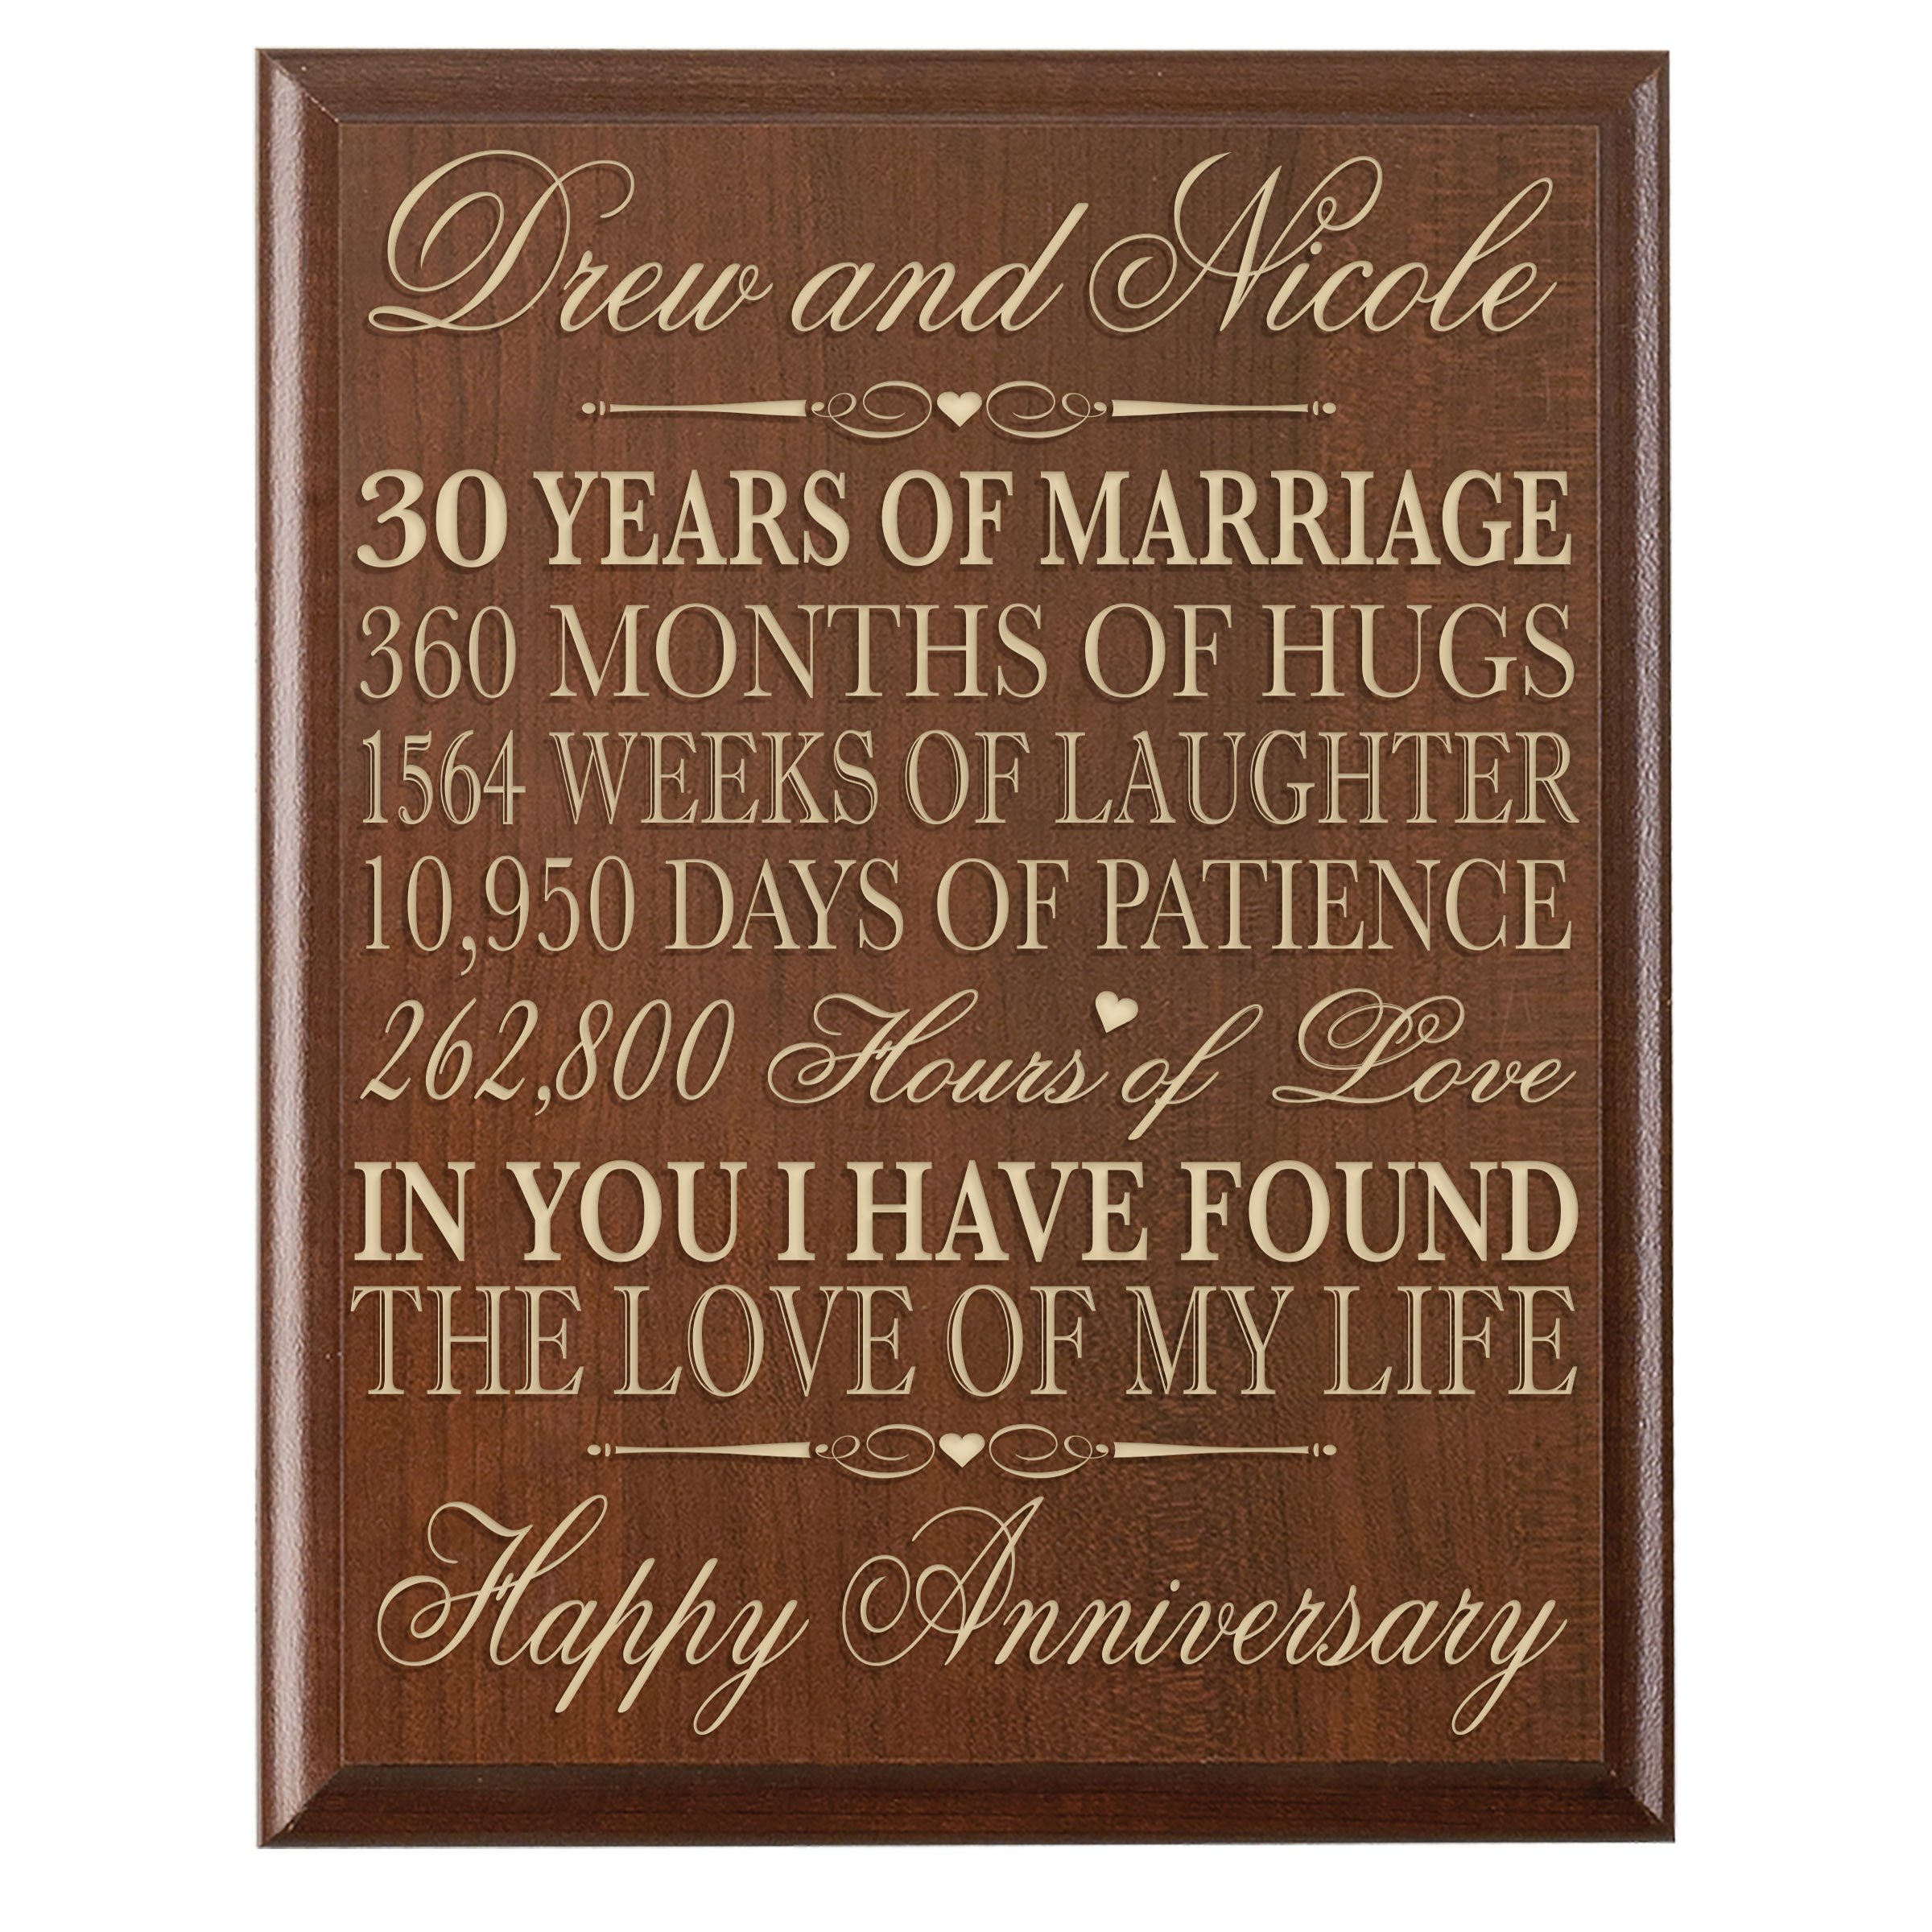 LifeSong Milestones Personalized 30th Wedding Anniversary Gift for Couple, Custom Made 12 Inches Wx 16 Inches H (Cherry)